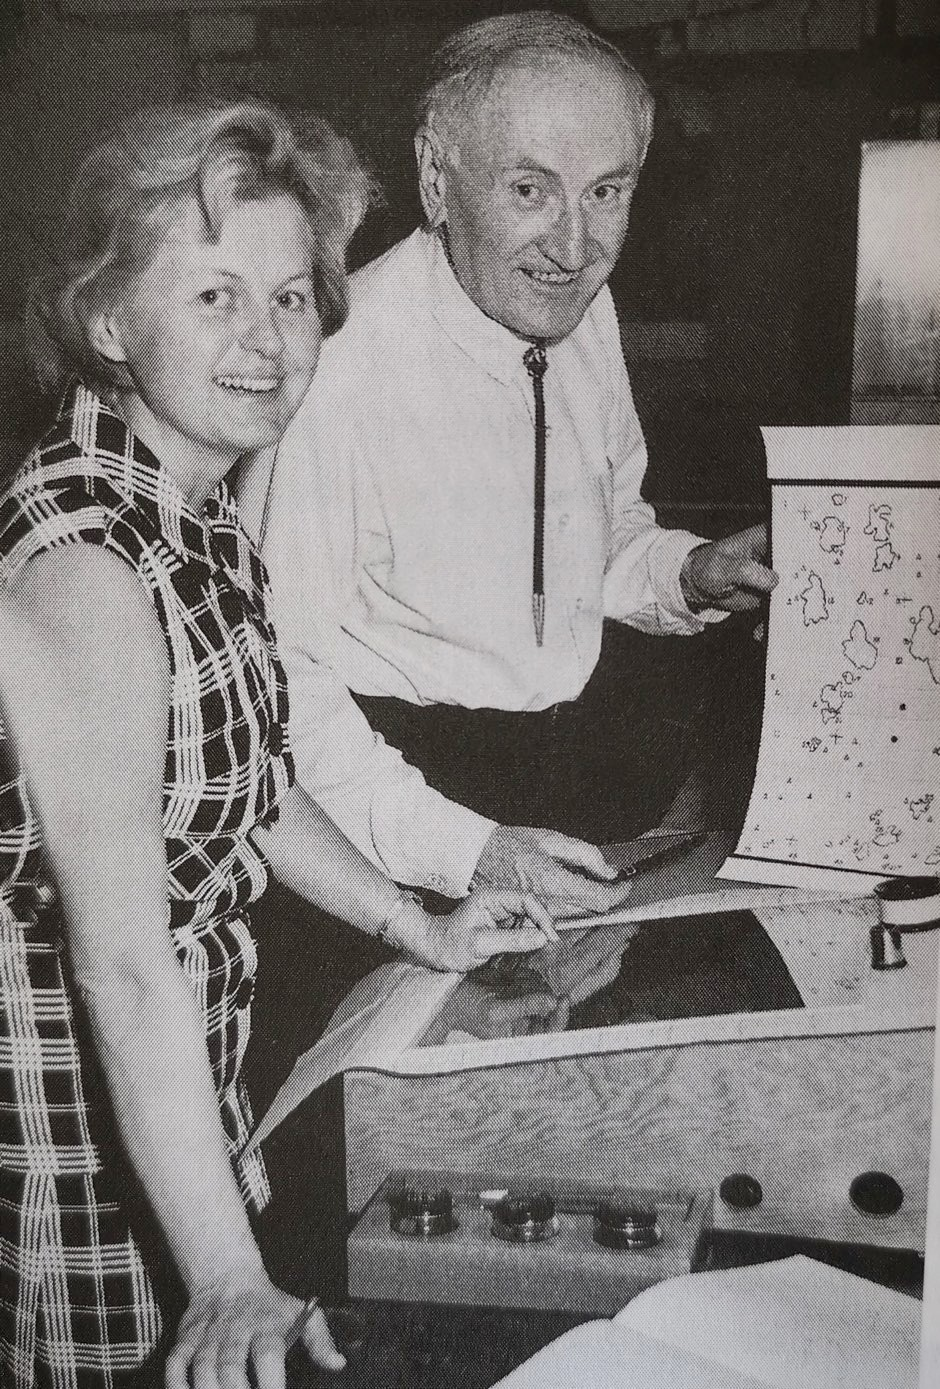 Zwicky with his wife Margrit in around 1965